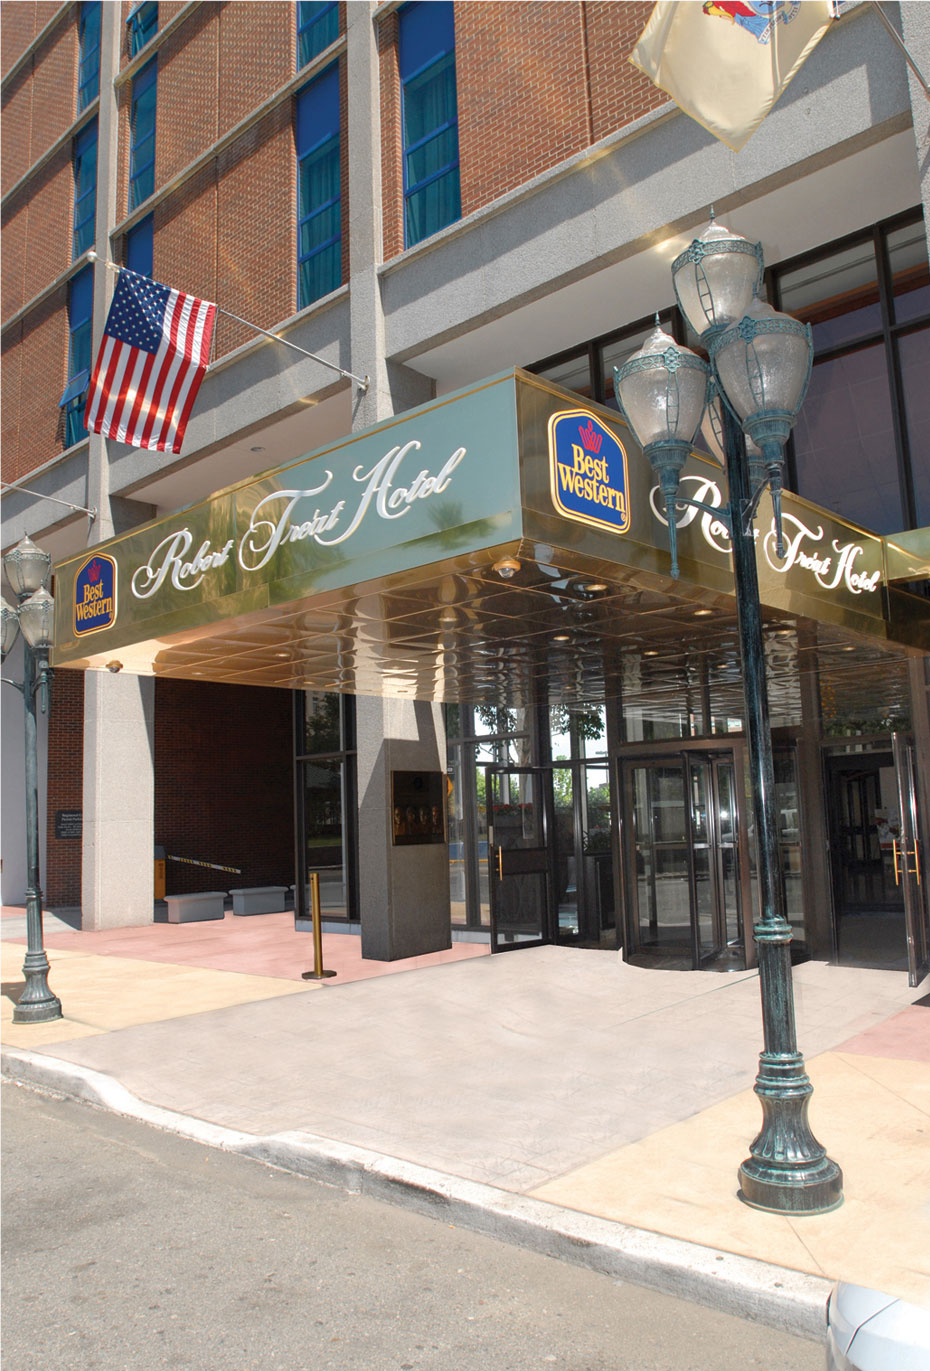 Contact Us At The Best Western Robert Treat Hotel